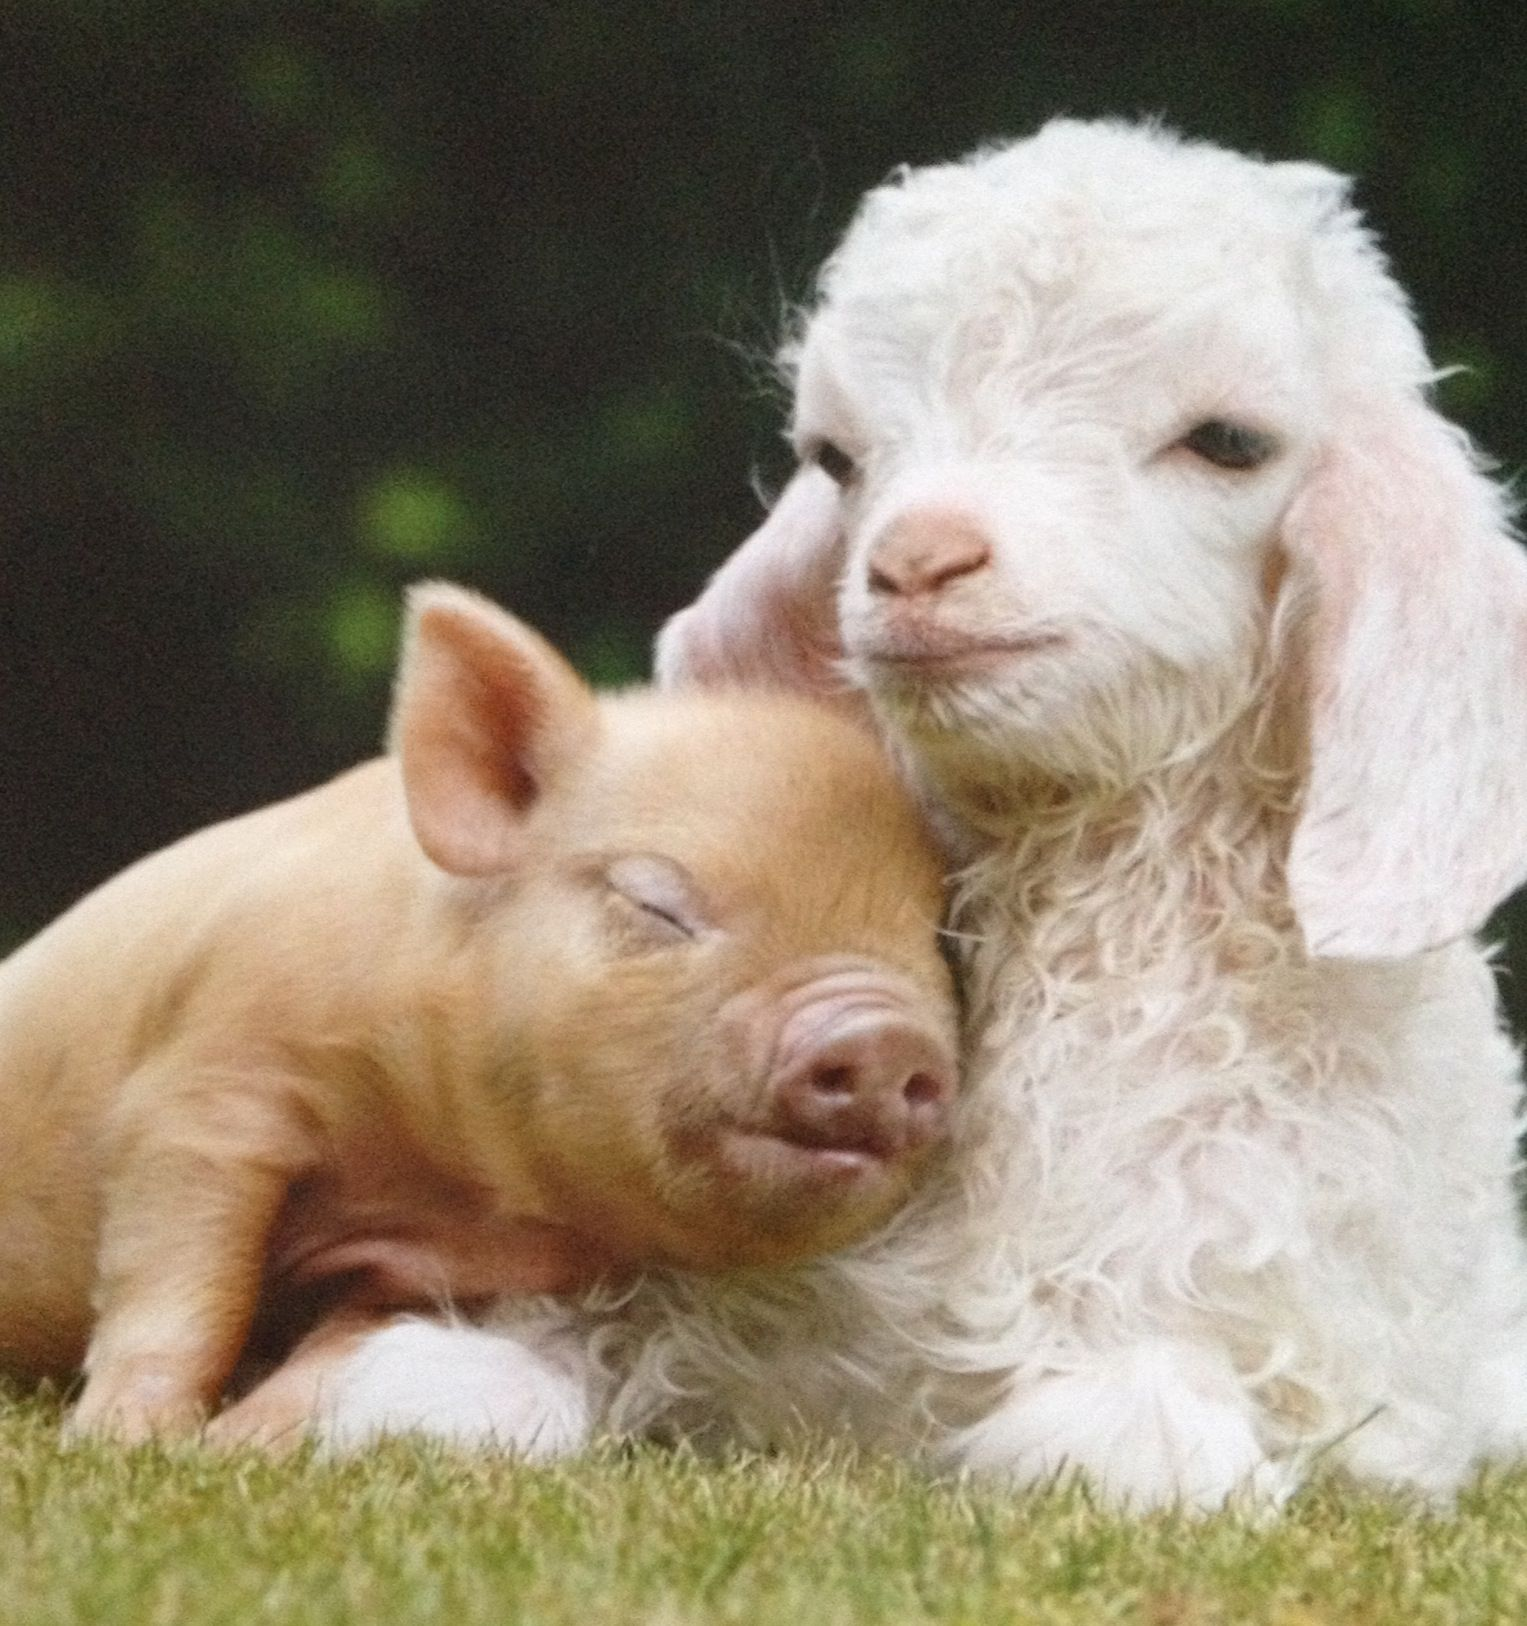 """""""Besties"""" Amazing how so many species relate. Human's need to look at them for lessons. S"""